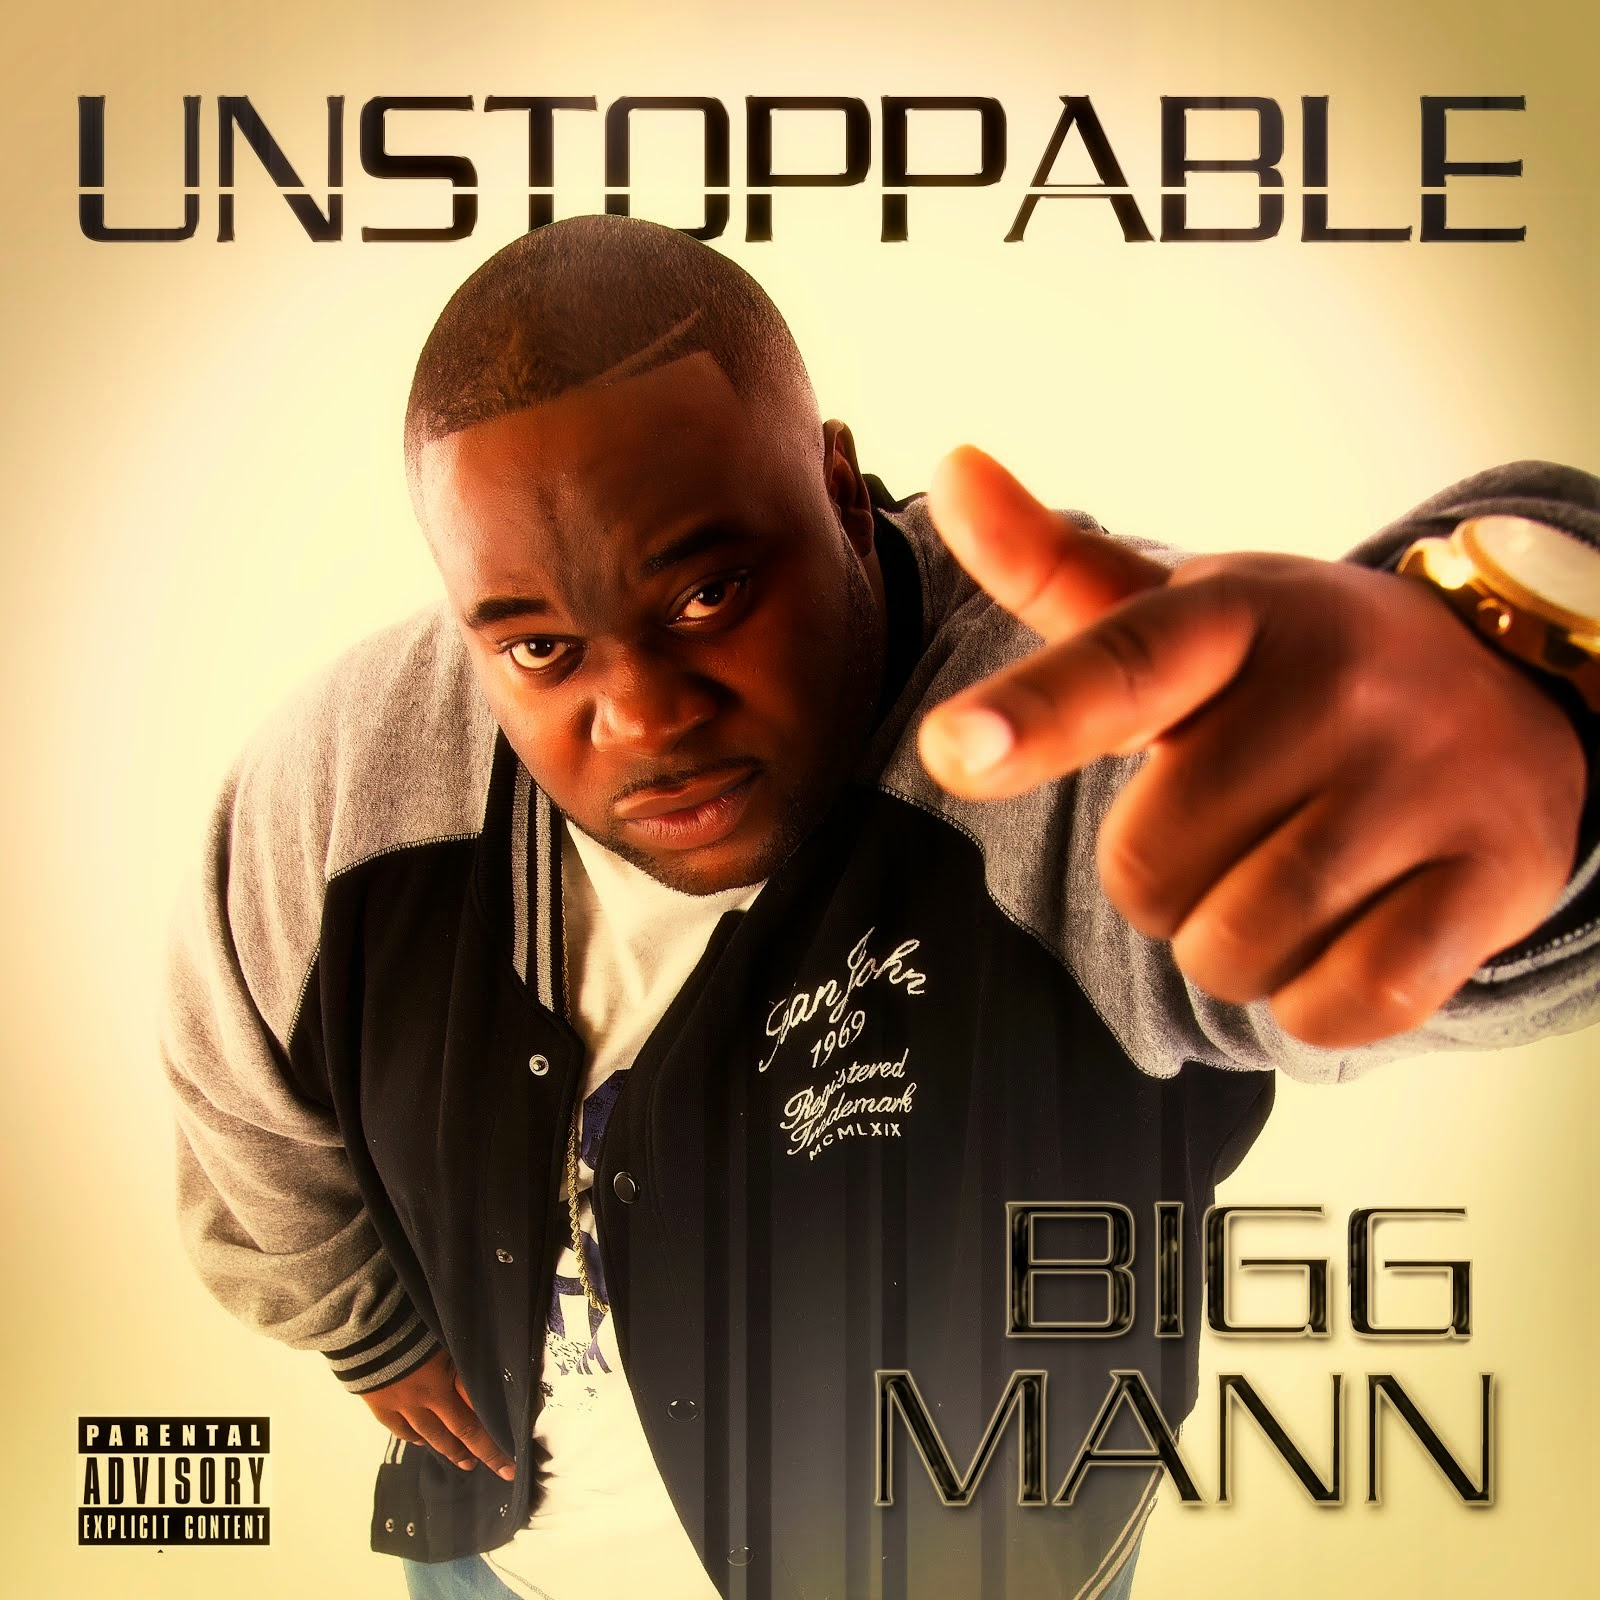 Biggmann's Official Site